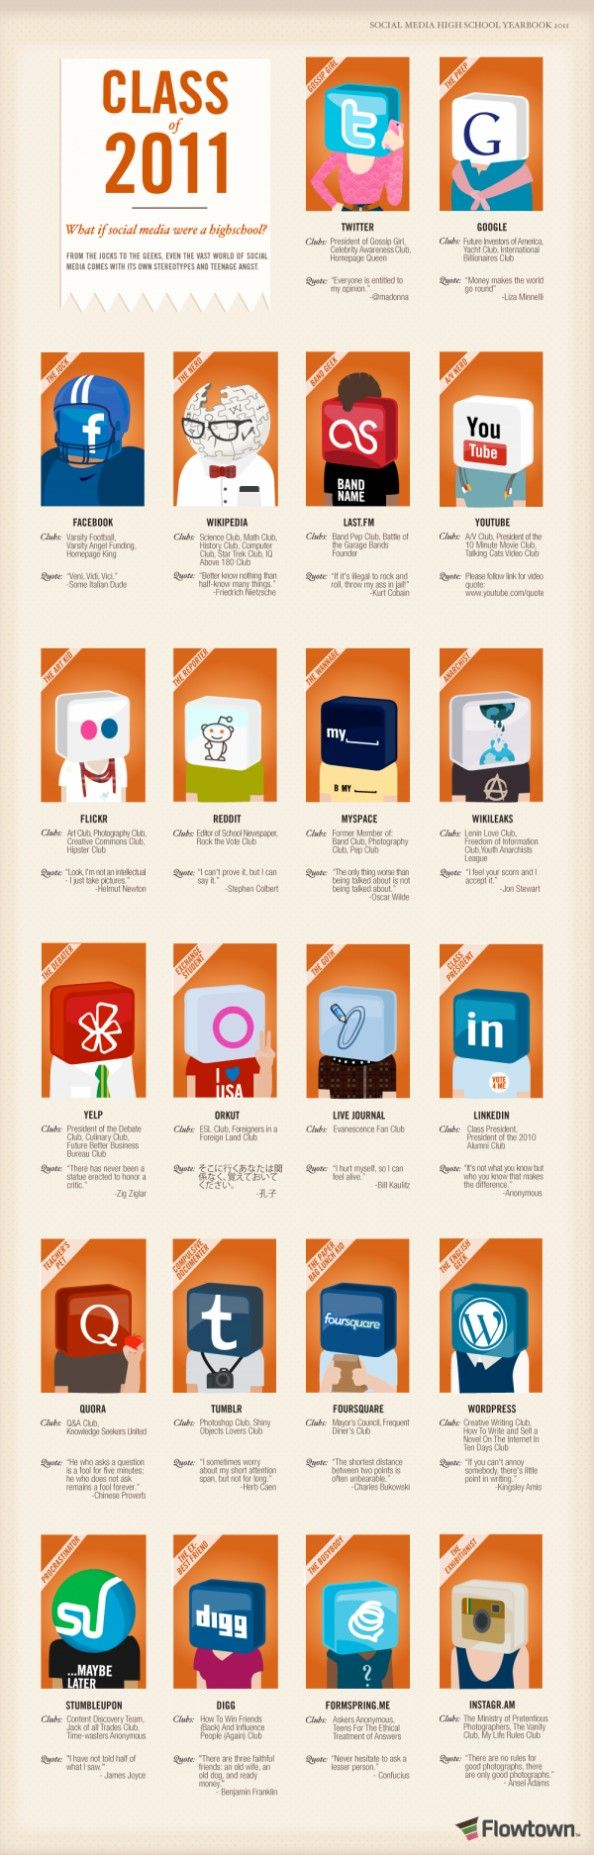 Social Media Yearbook Infographic